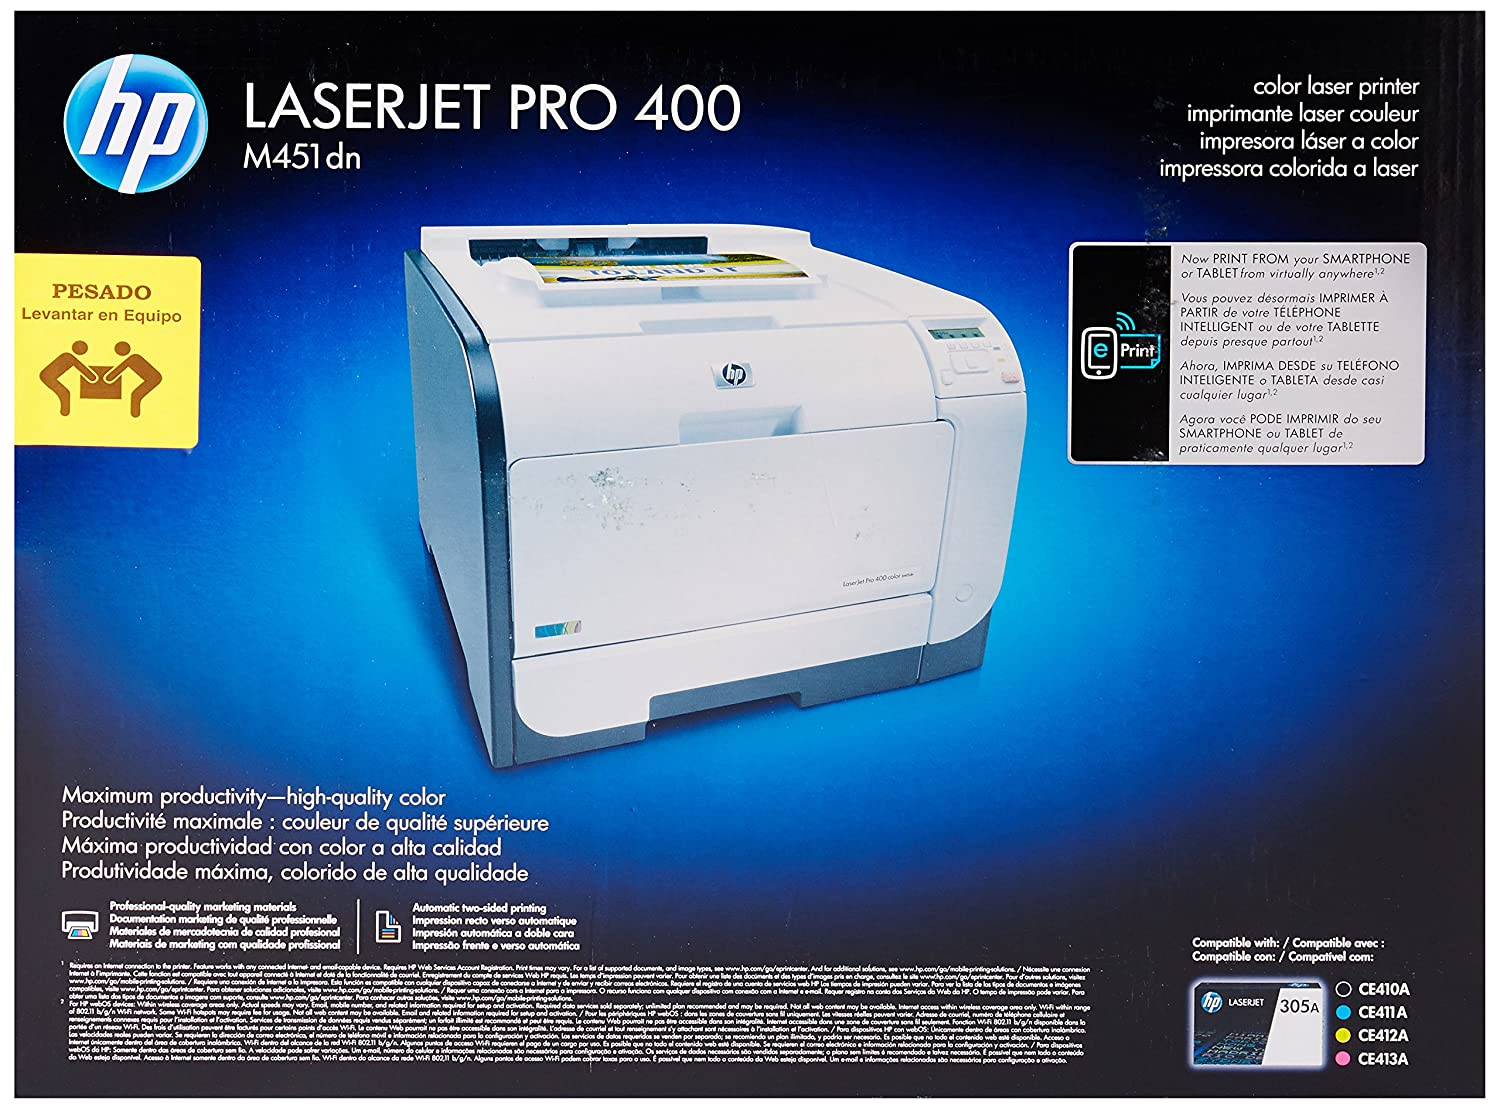 Hp color laserjet pro 400 m451nw (ce956a) + usb cable – купить на ➦ rozetka. Ua. ☎: (044) 537-02-22, 0 (800) 303-344. Оперативная доставка.